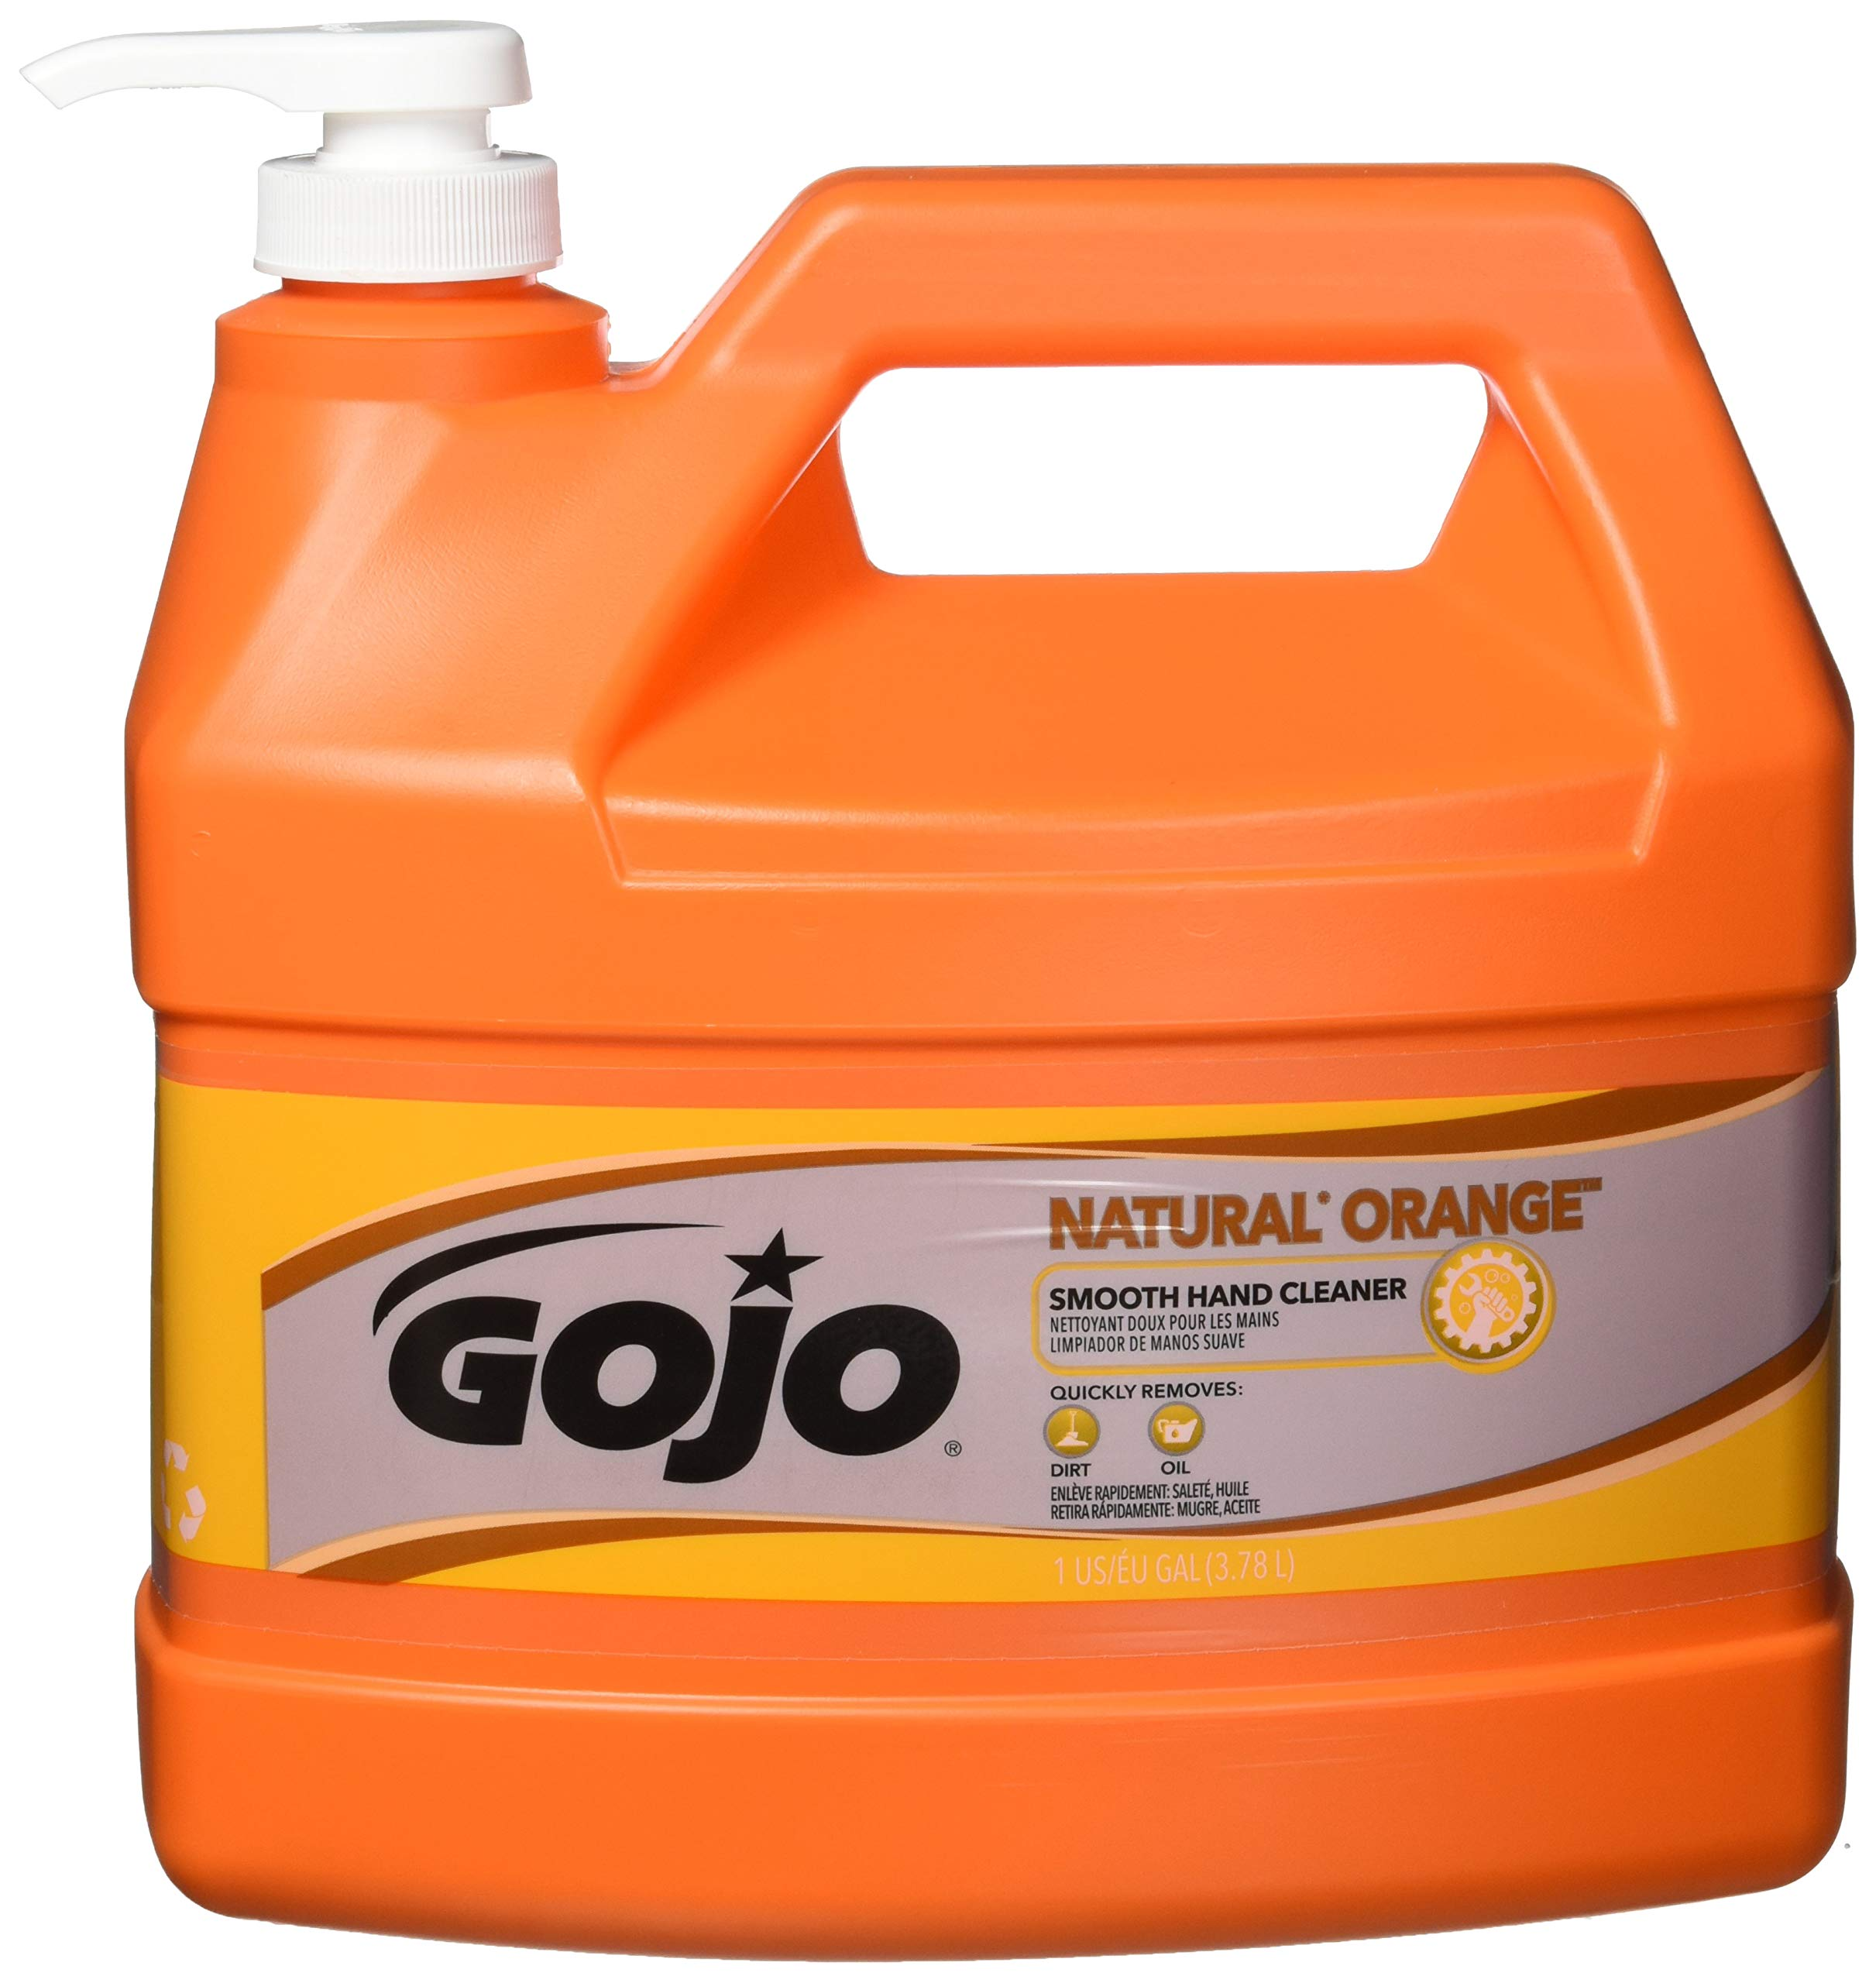 GOJO Natural Orange Smooth Hand Cleaner, Citrus Scent, 1 Gallon Quick Acting Hand Cleaner Pump Bottle (Case of 4) - 0945-04